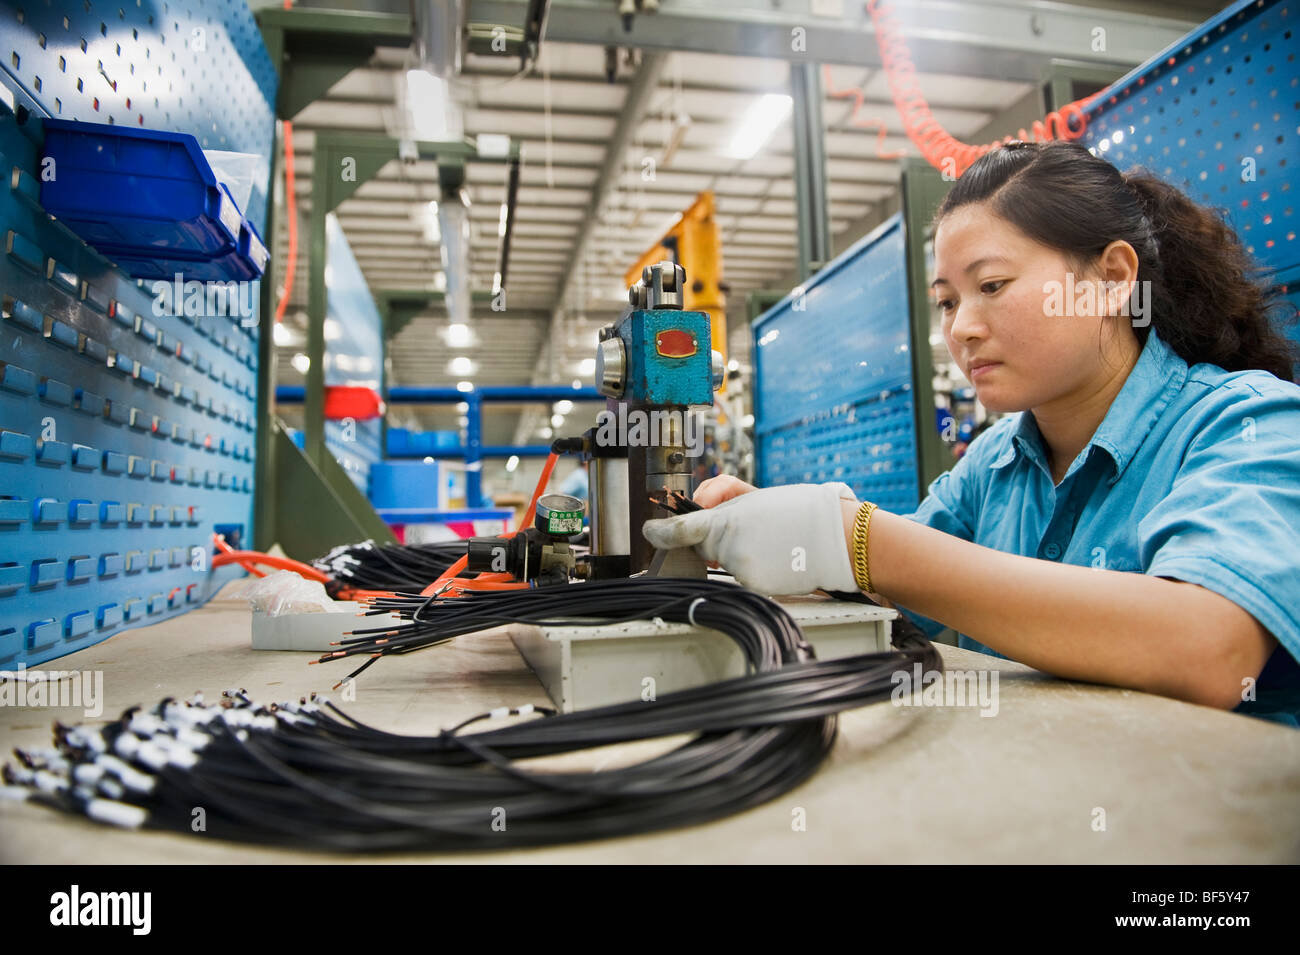 A  factory employee clamping and sodding small parts. - Stock Image